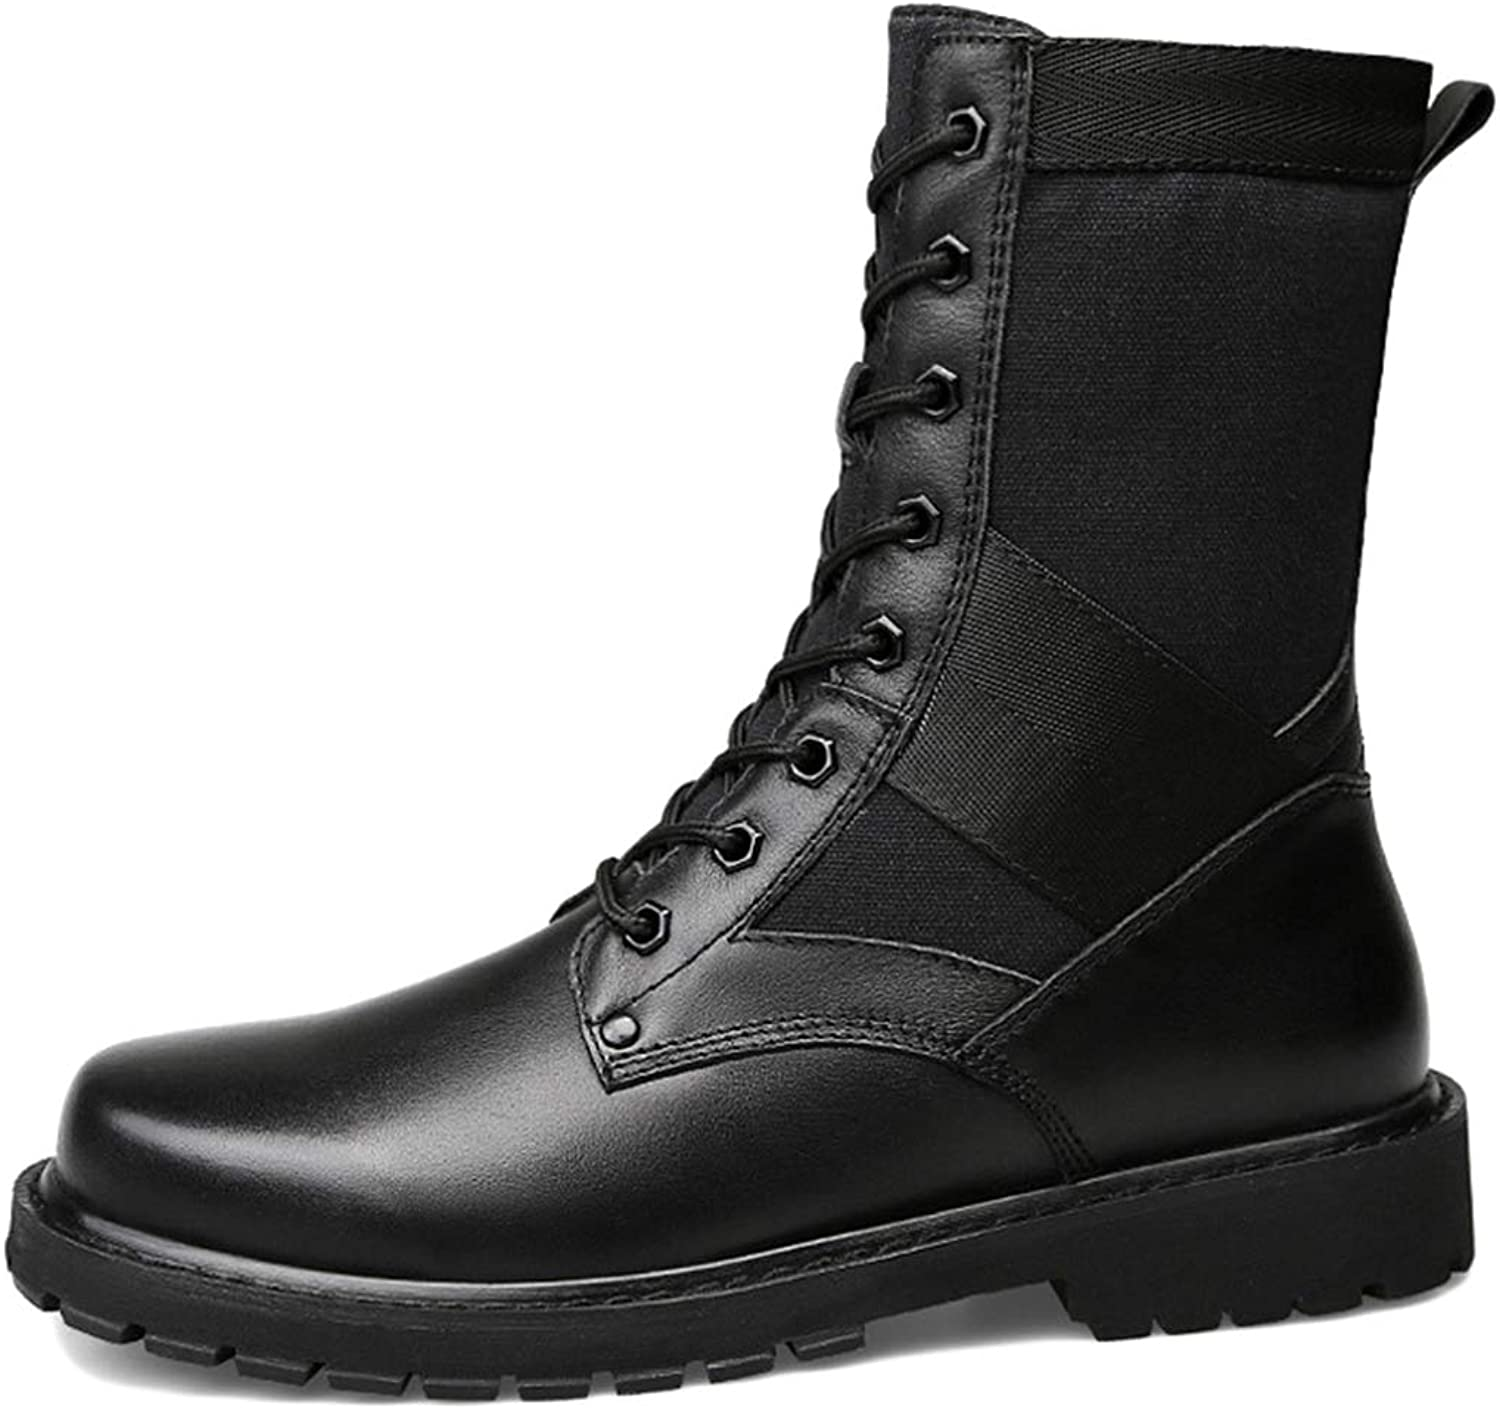 Liabb Men's Lace-ups Desert Combat Boots Outdoor Camping Climbing Army Tactical Boot Jungle Hiking High Top Patrol shoes Military Armed Footwear